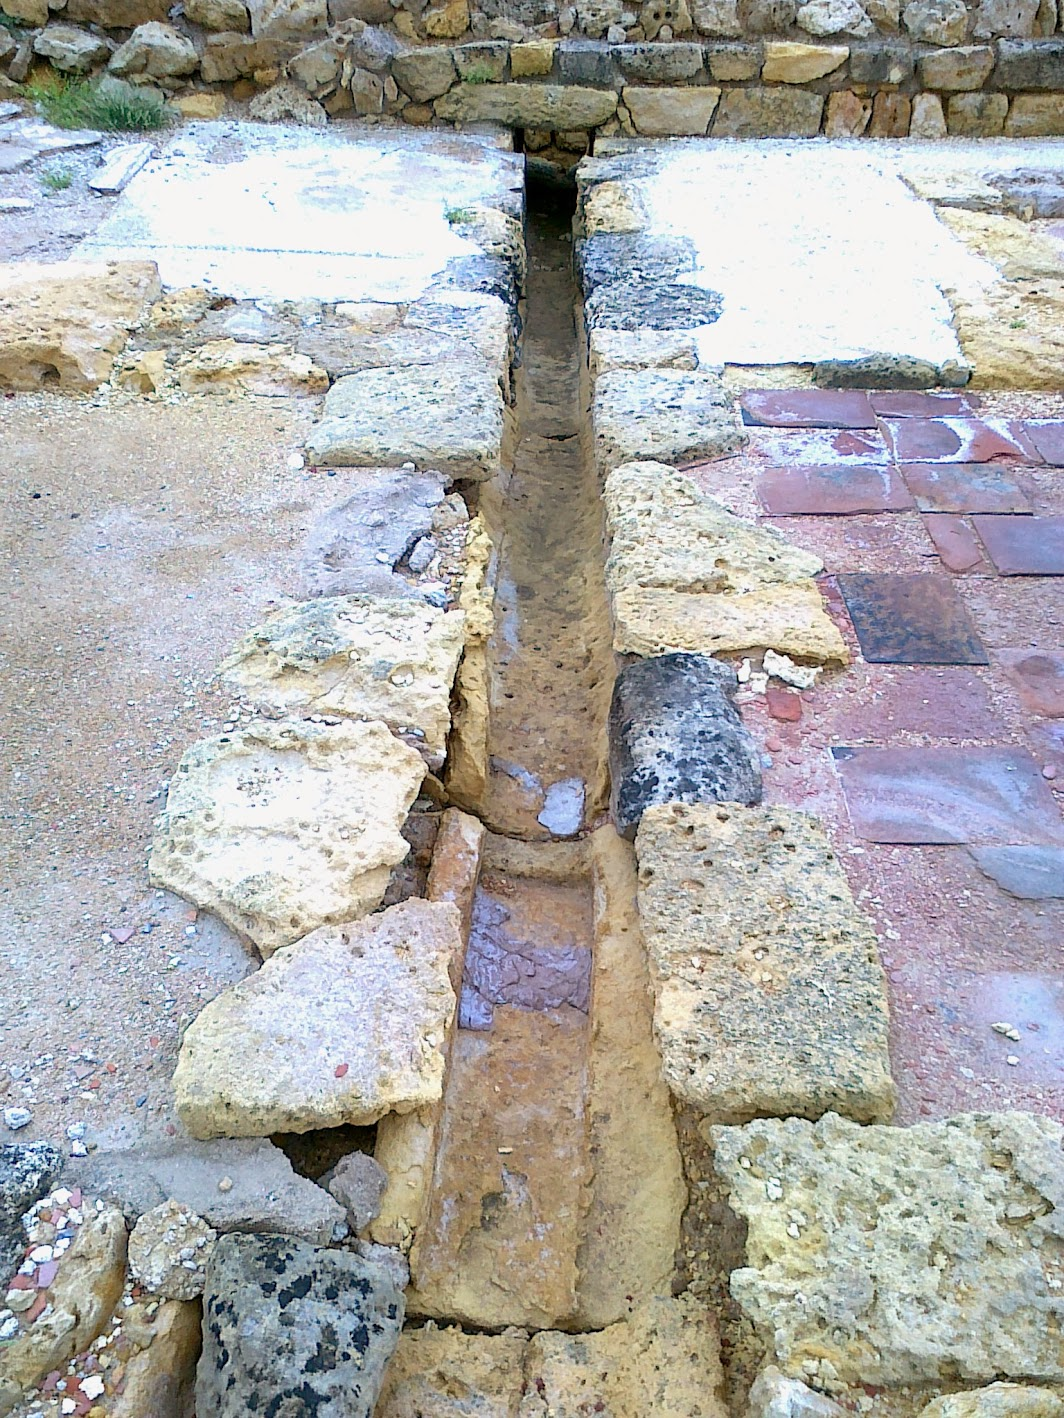 Remains of drainage system